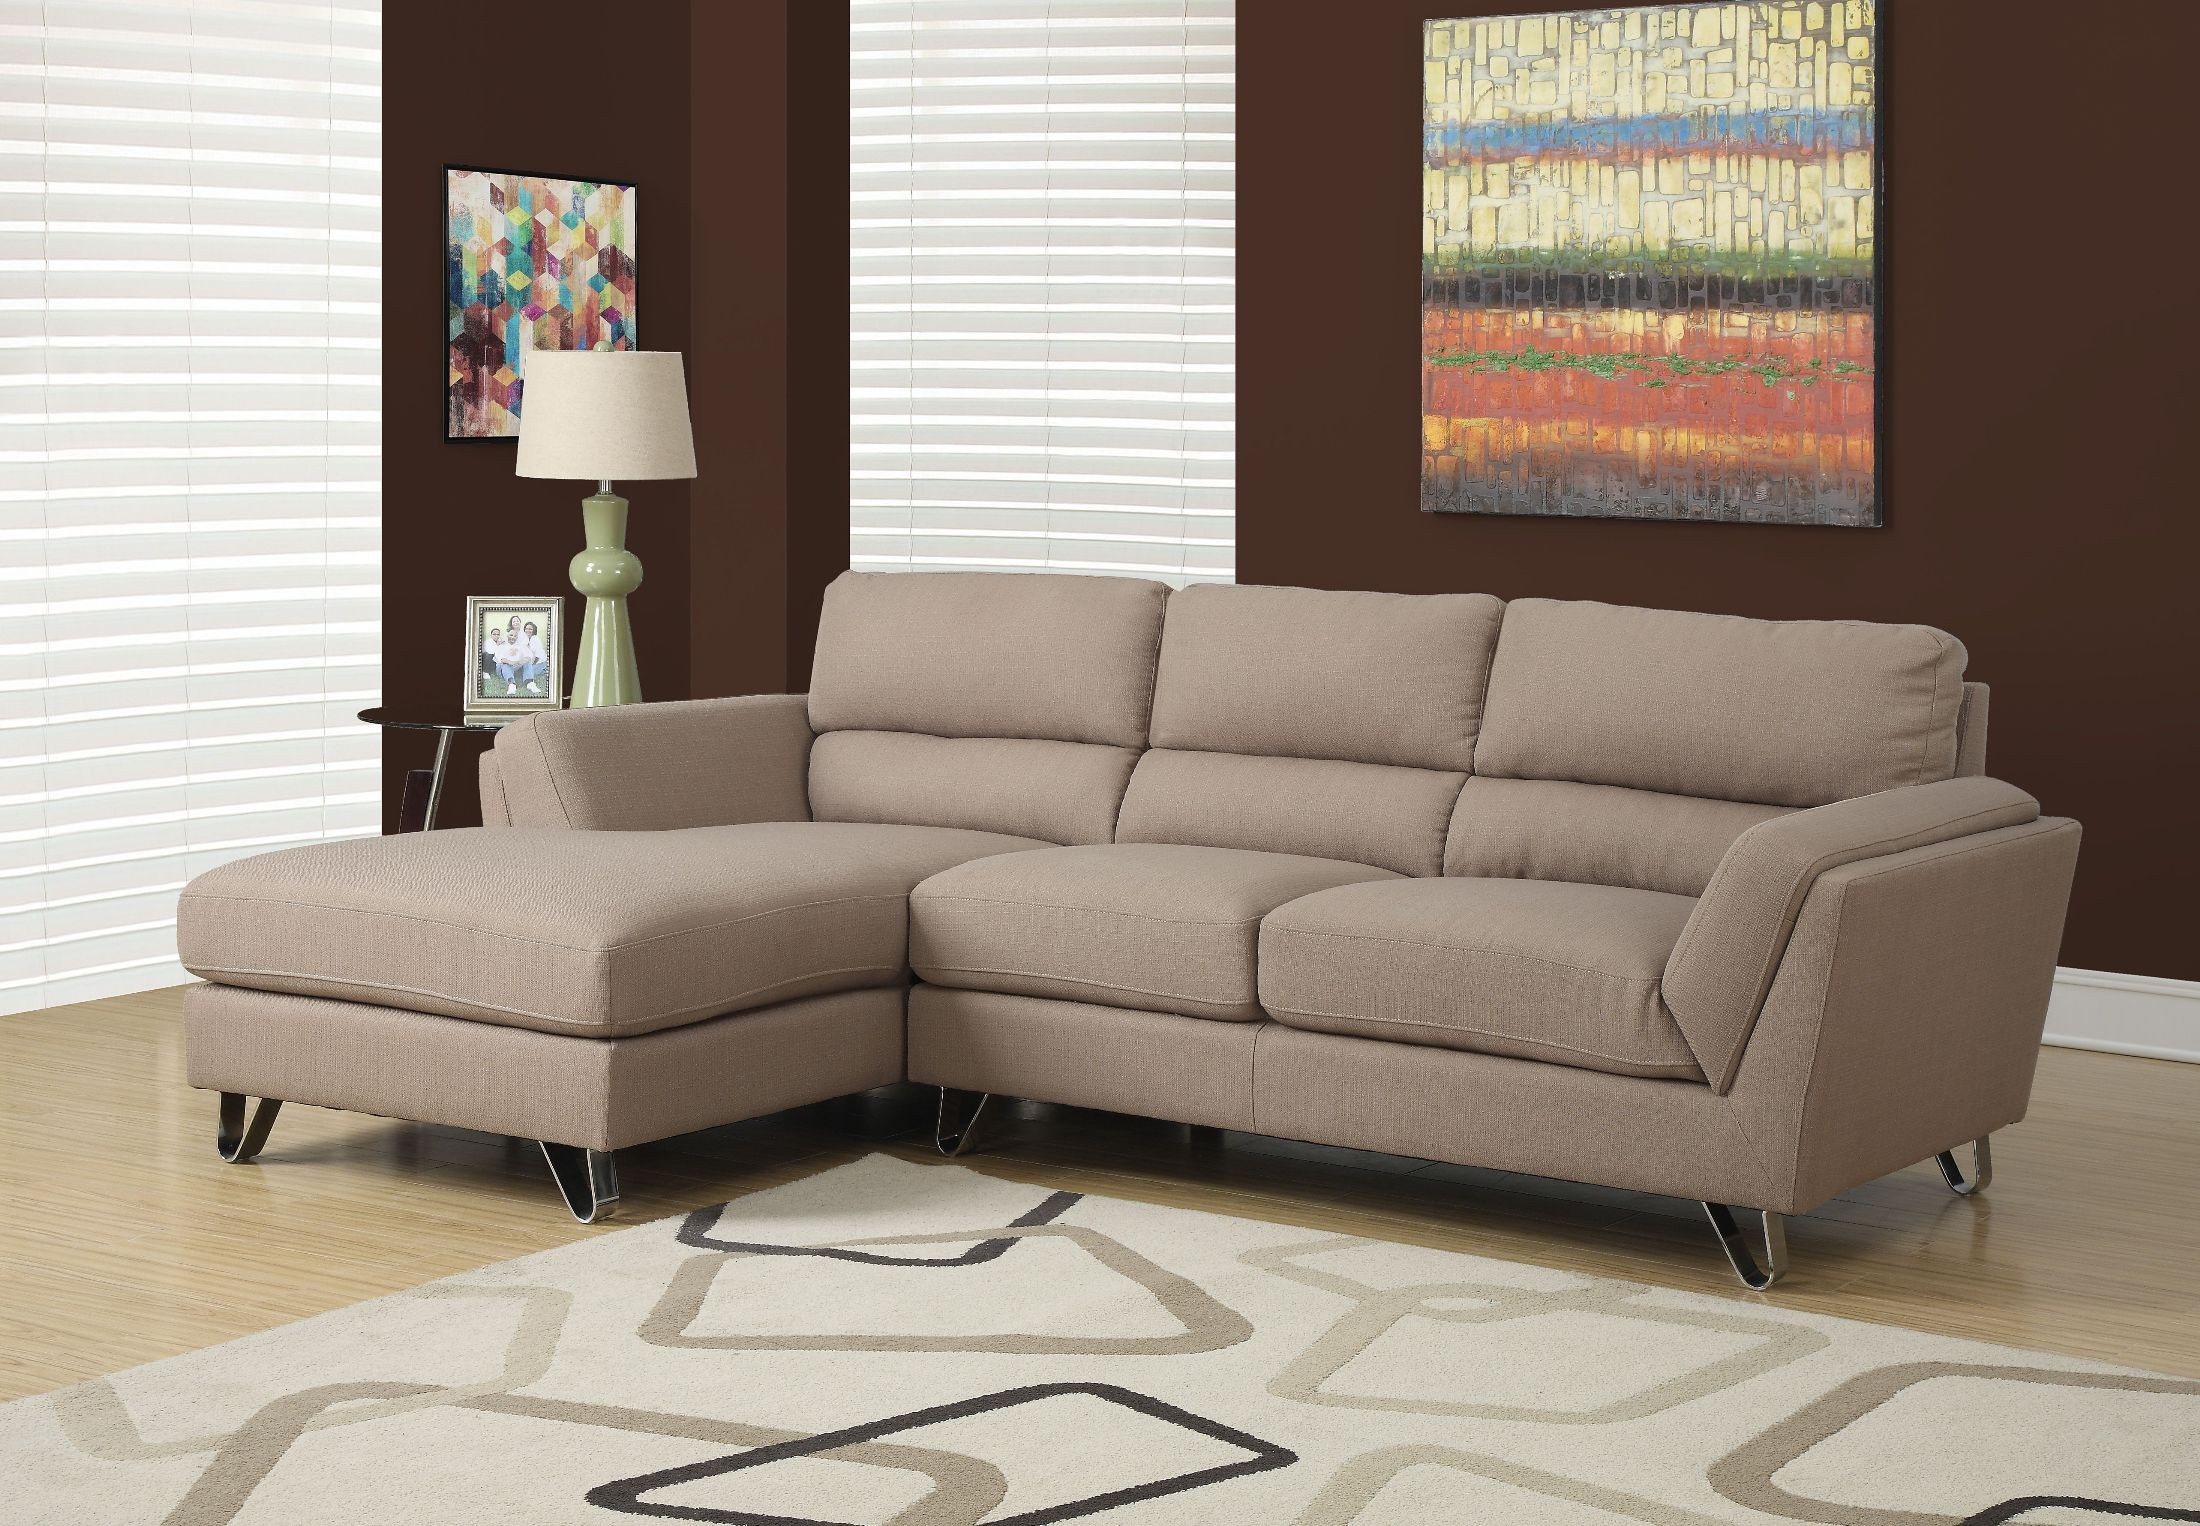 Light Brown Linen Sofa Sectional from Monarch (8210LB